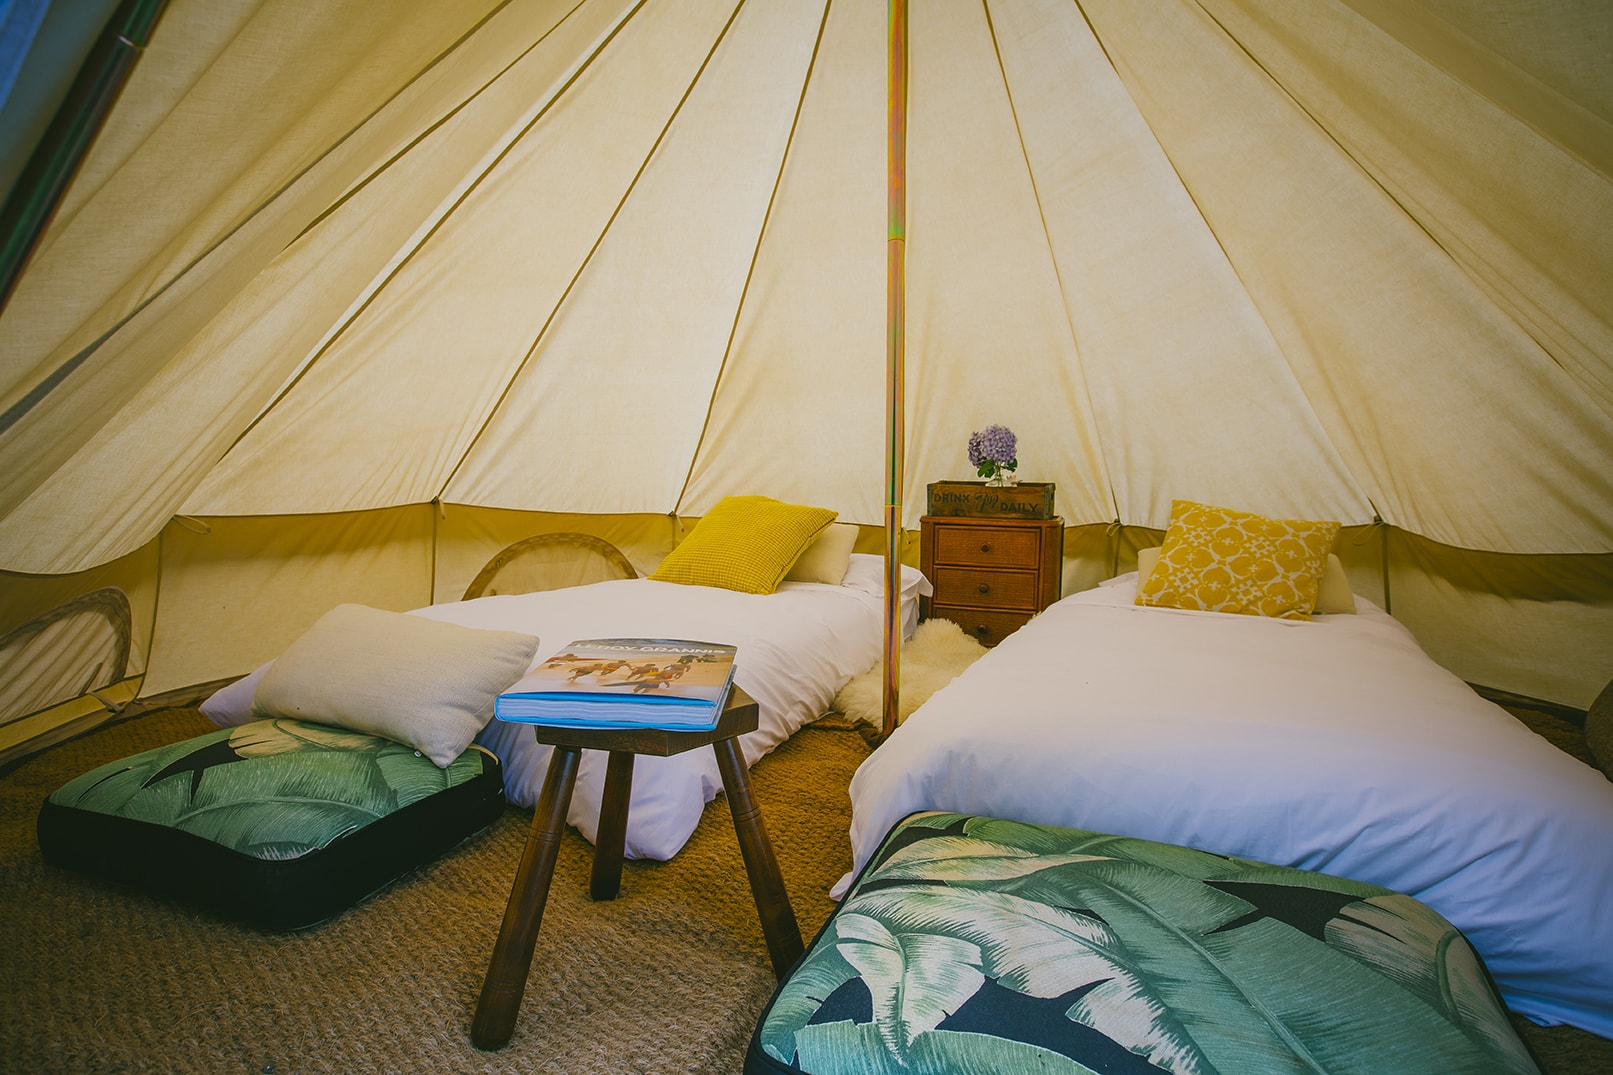 Snazzy_Camp_Biarritz_glamping_paysbasque_holidays (65).jpg